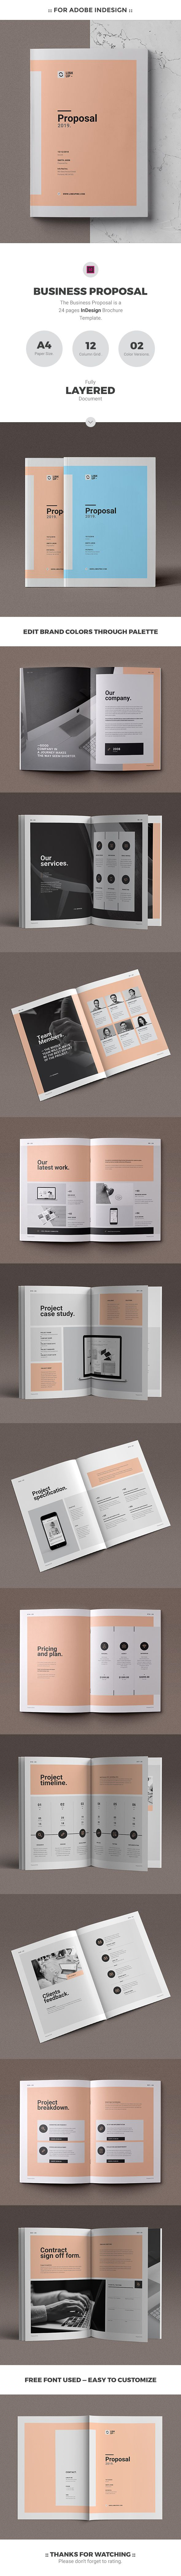 The Minimal #Proposal Brochure Template is a 24 pages Indesign brochure template. This template is for use as a Proposal / Estimate / Client Services / Agency or Studio Brochure.  #proposal #brochure #minimal #minimalist #clean #modern #brochuredesign #brochuretemplate